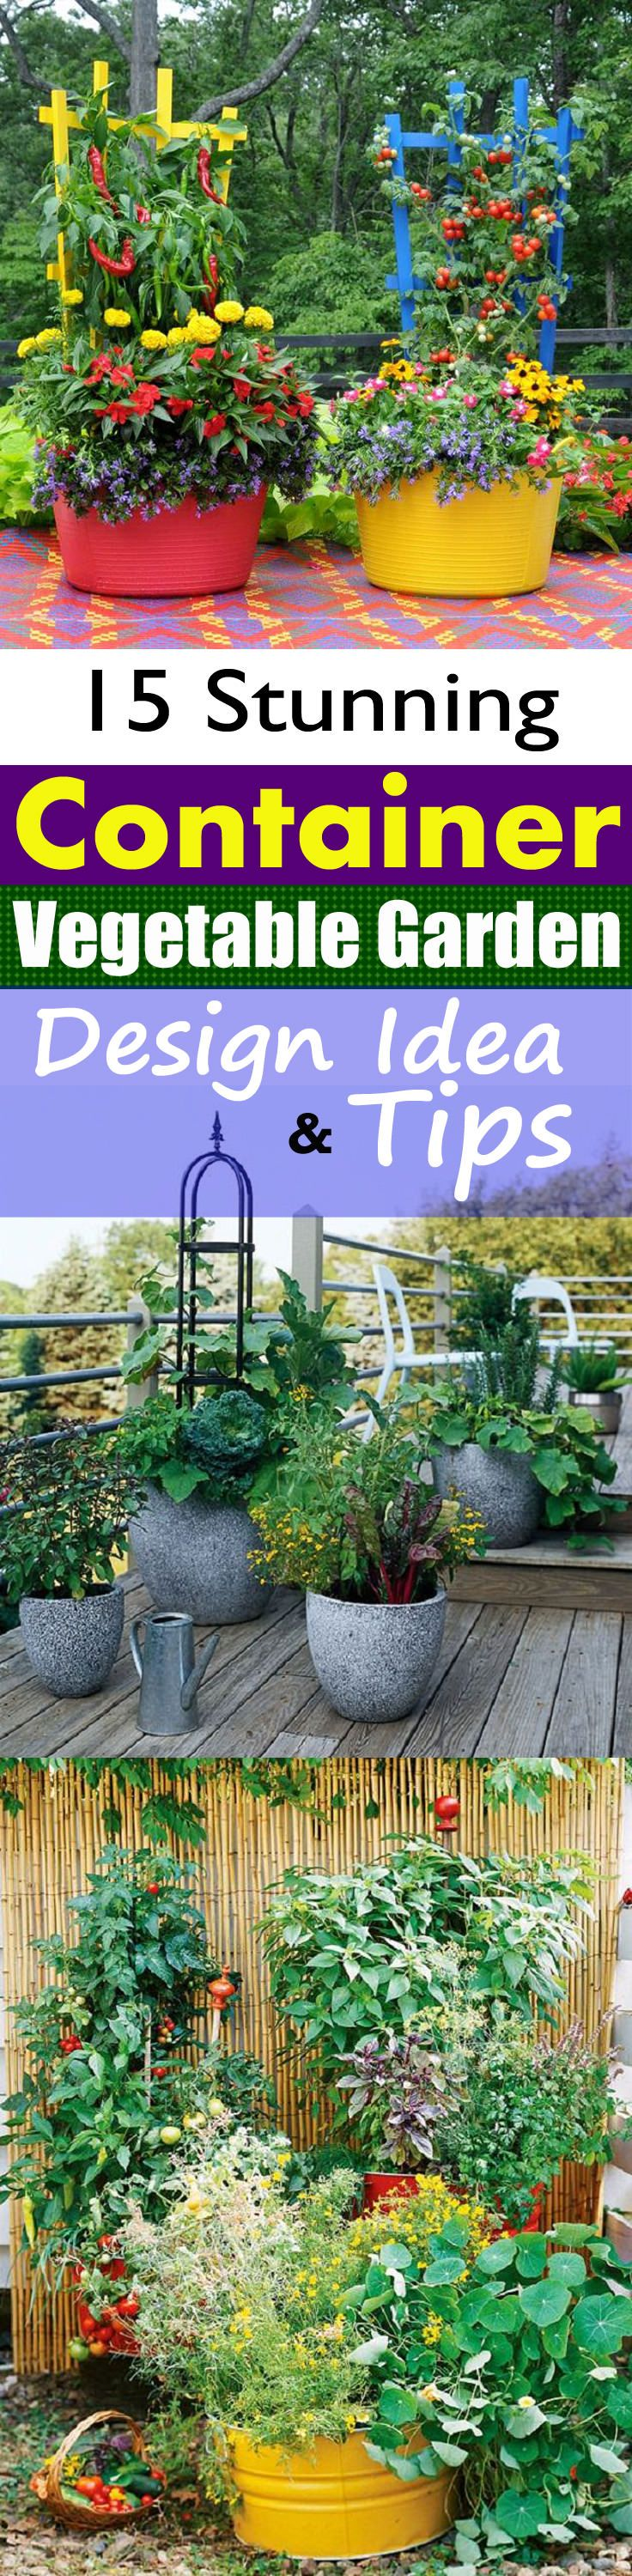 15 stunning container vegetable garden design ideas tips - Vegetable Garden Design